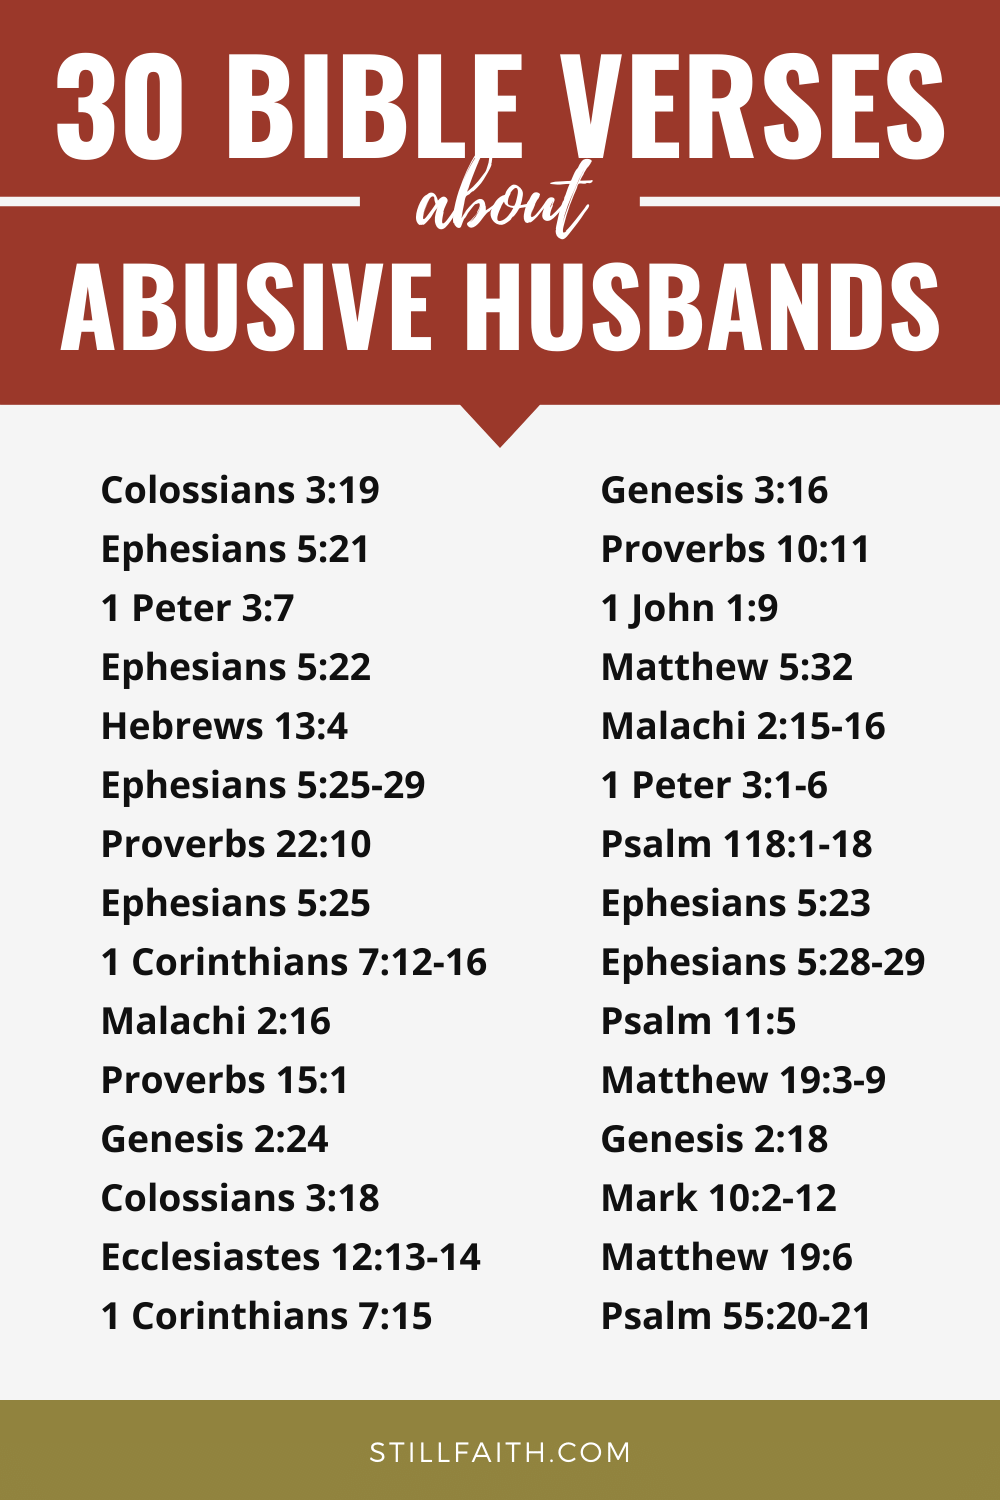 48 Bible Verses about Abusive Husbands